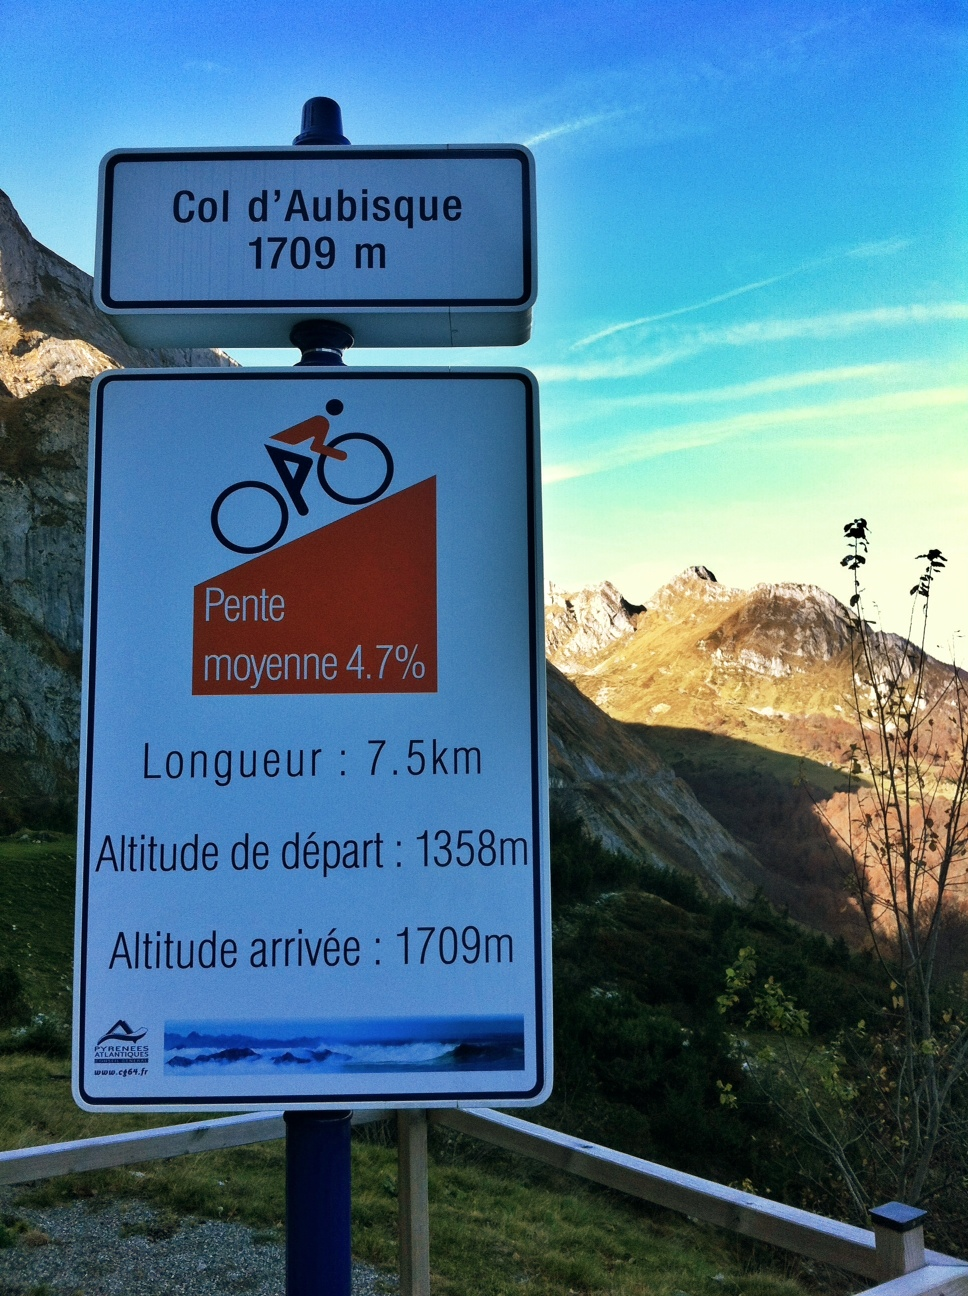 Col d'Aubisque – 2nd Col in the Bag of Cols